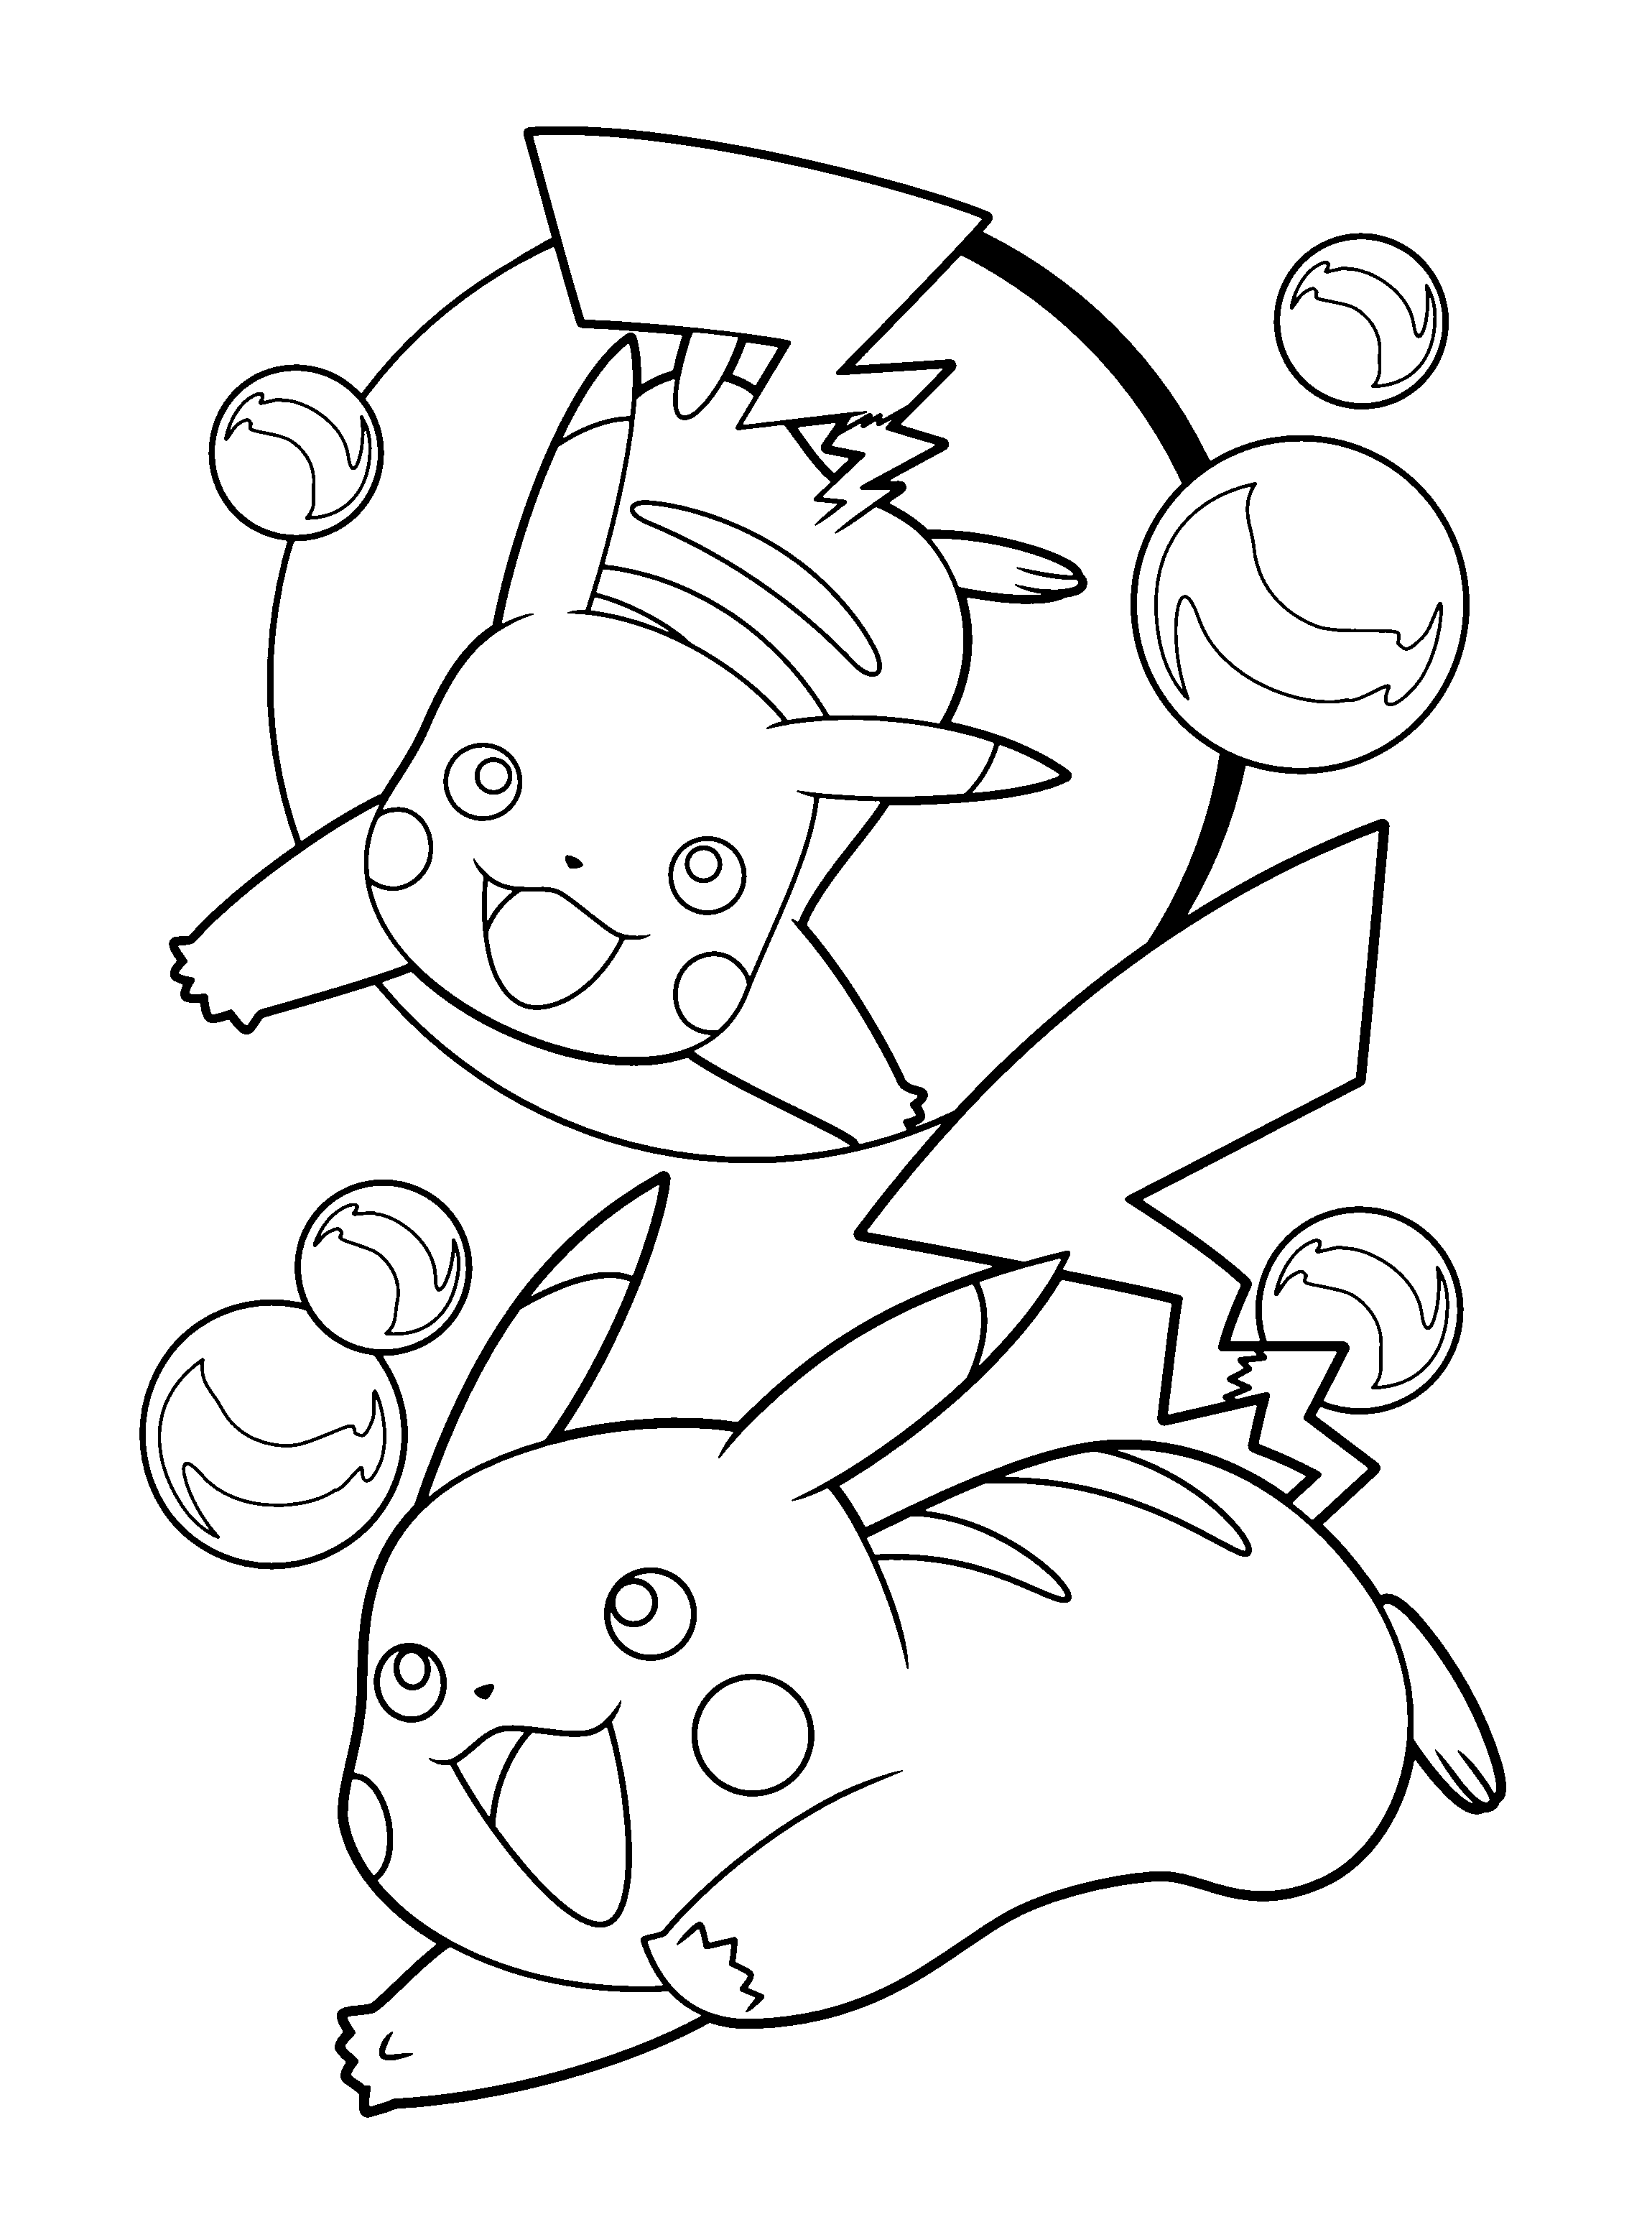 Glitter Force Coloring Pages Printable | Coloring Pages 2019 | 3100x2300